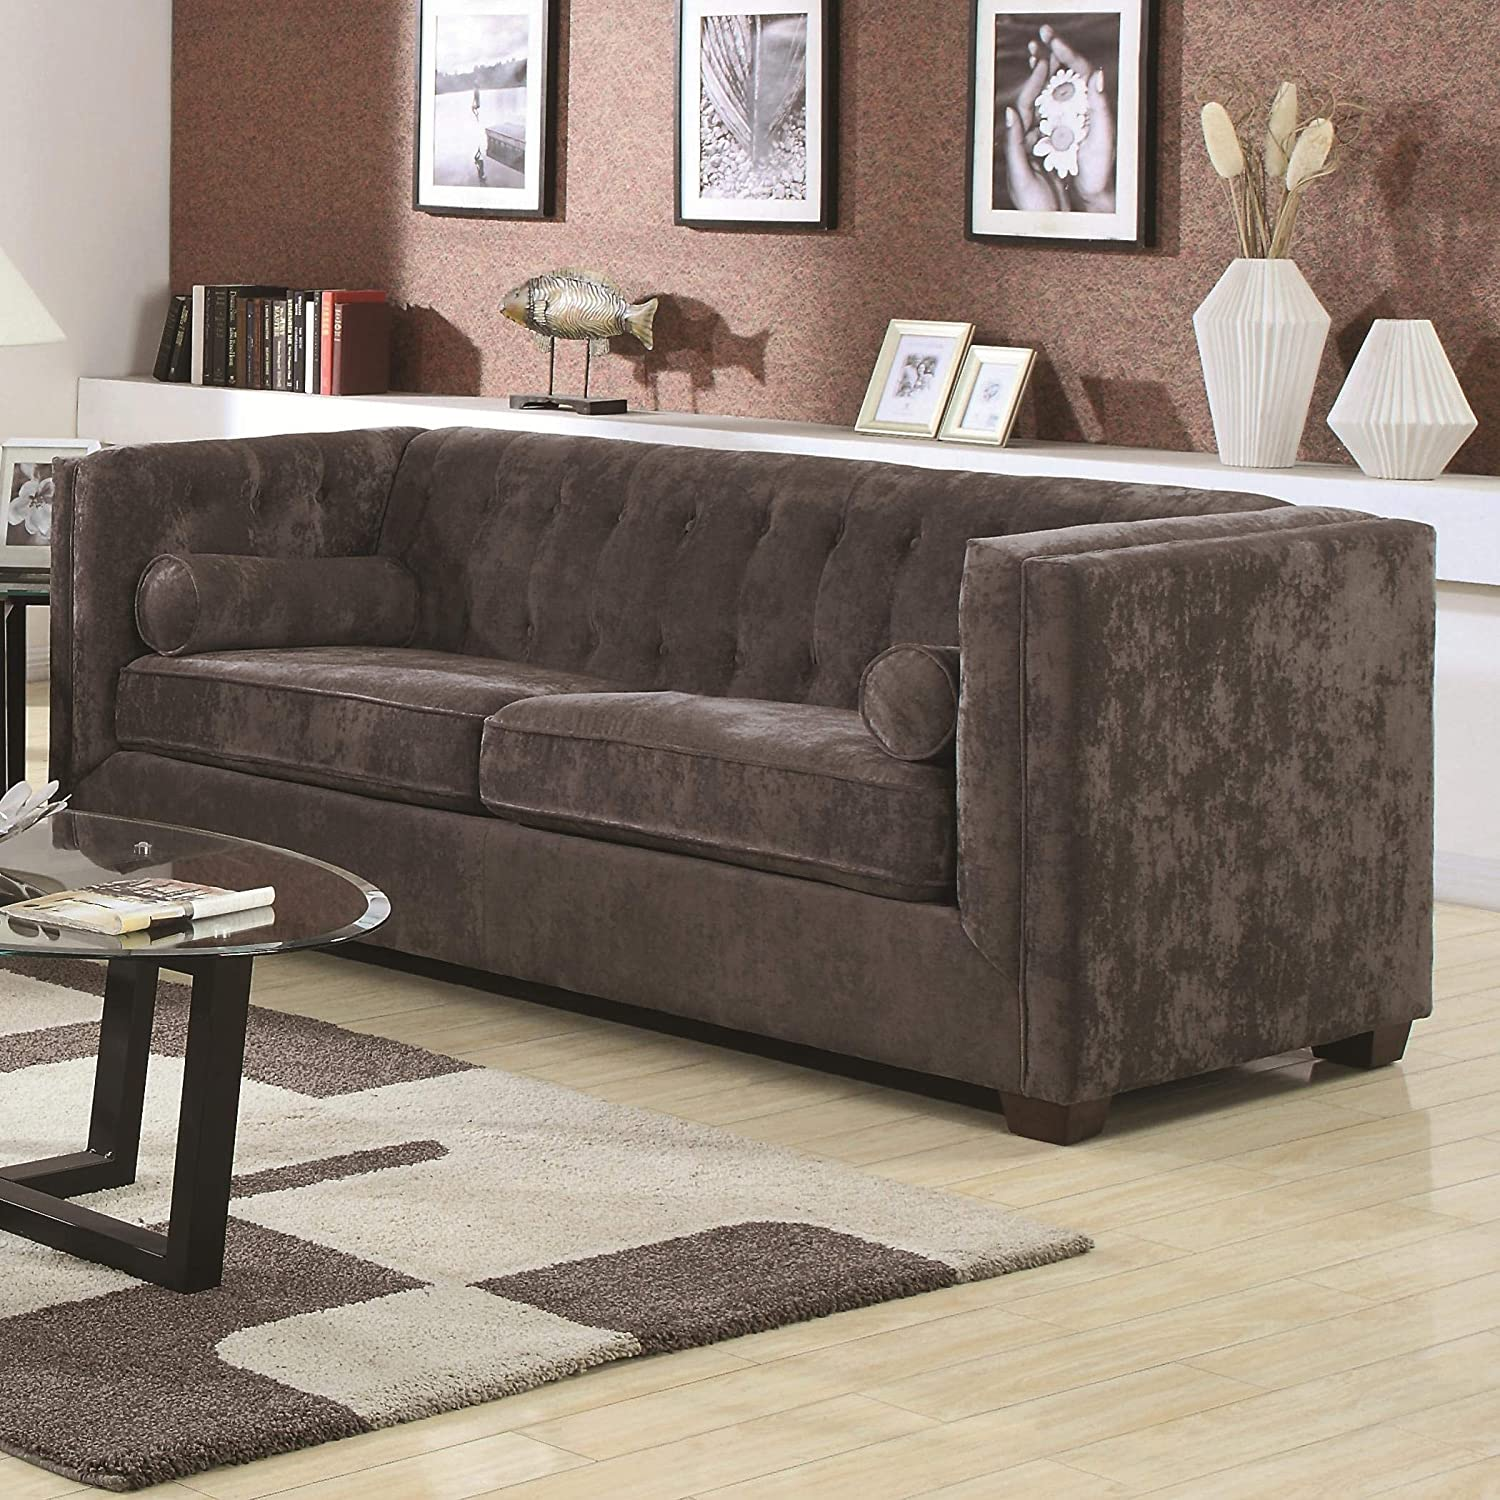 10 Best Chesterfield Sofa Reviews of 10 You Should Know